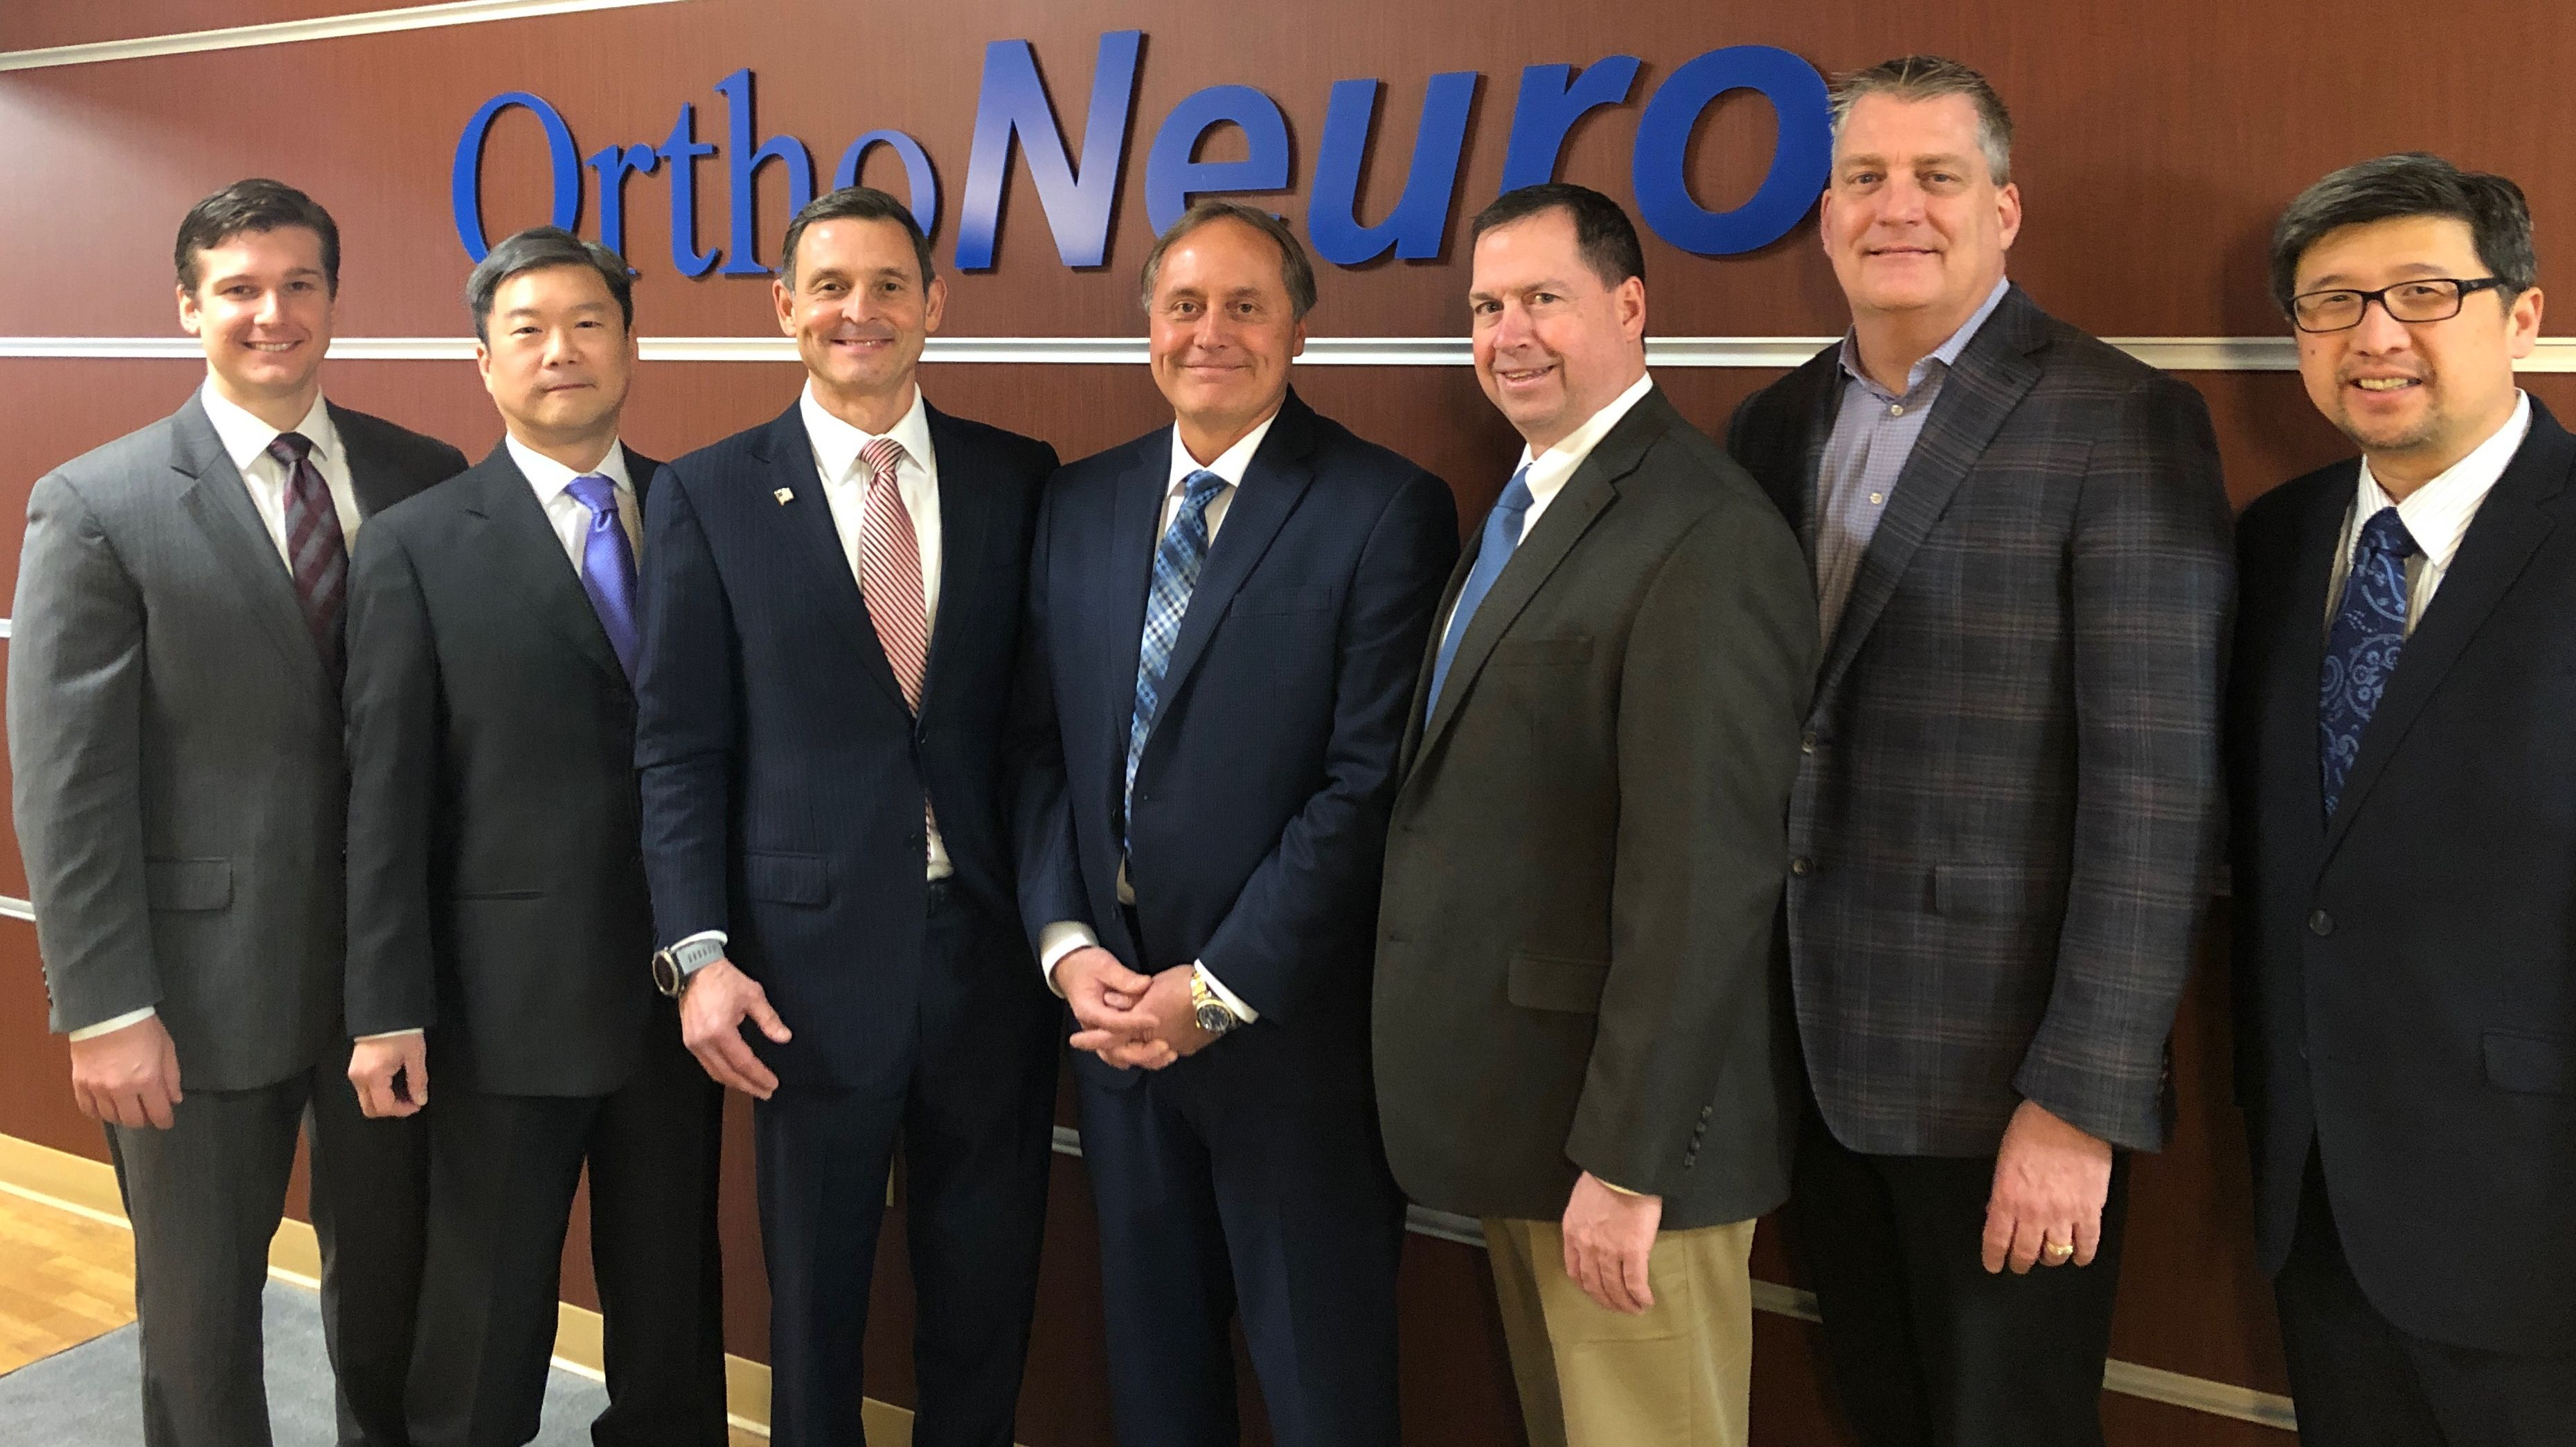 OrthoNeuro Spine Division Recognized at 2020 Arthritis Foundation Crystal Ball Gala